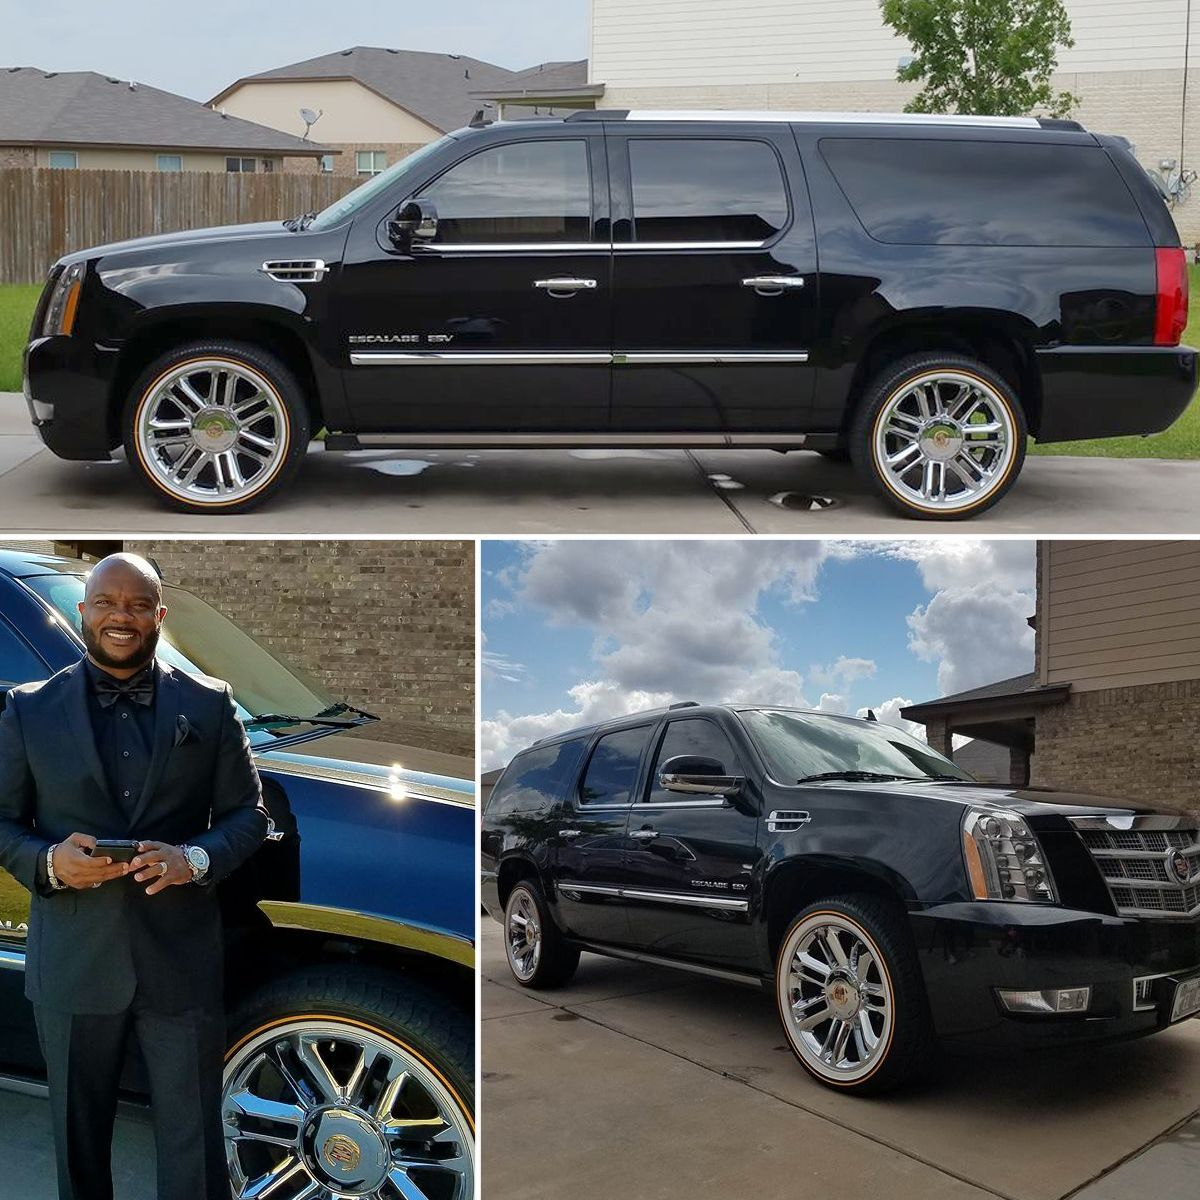 for tires ext pin nice cadillac inch clean tyres on escalade this vogue